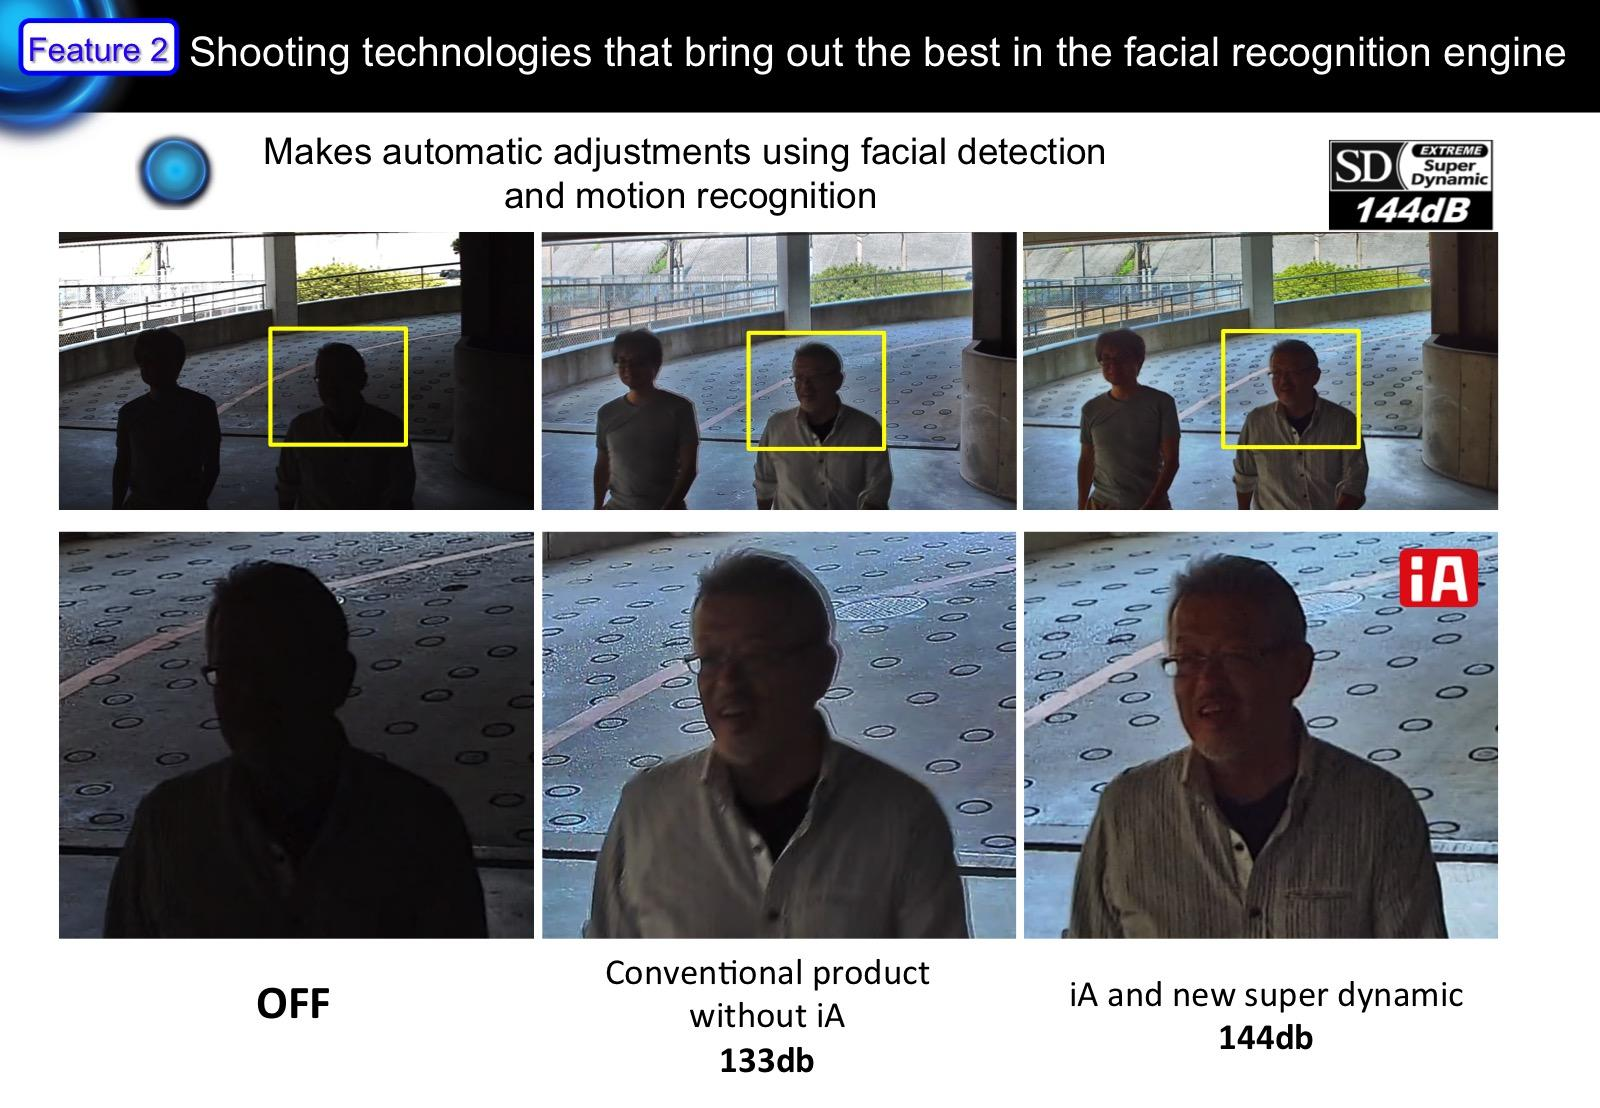 image: Panasonic's facial recognition technology